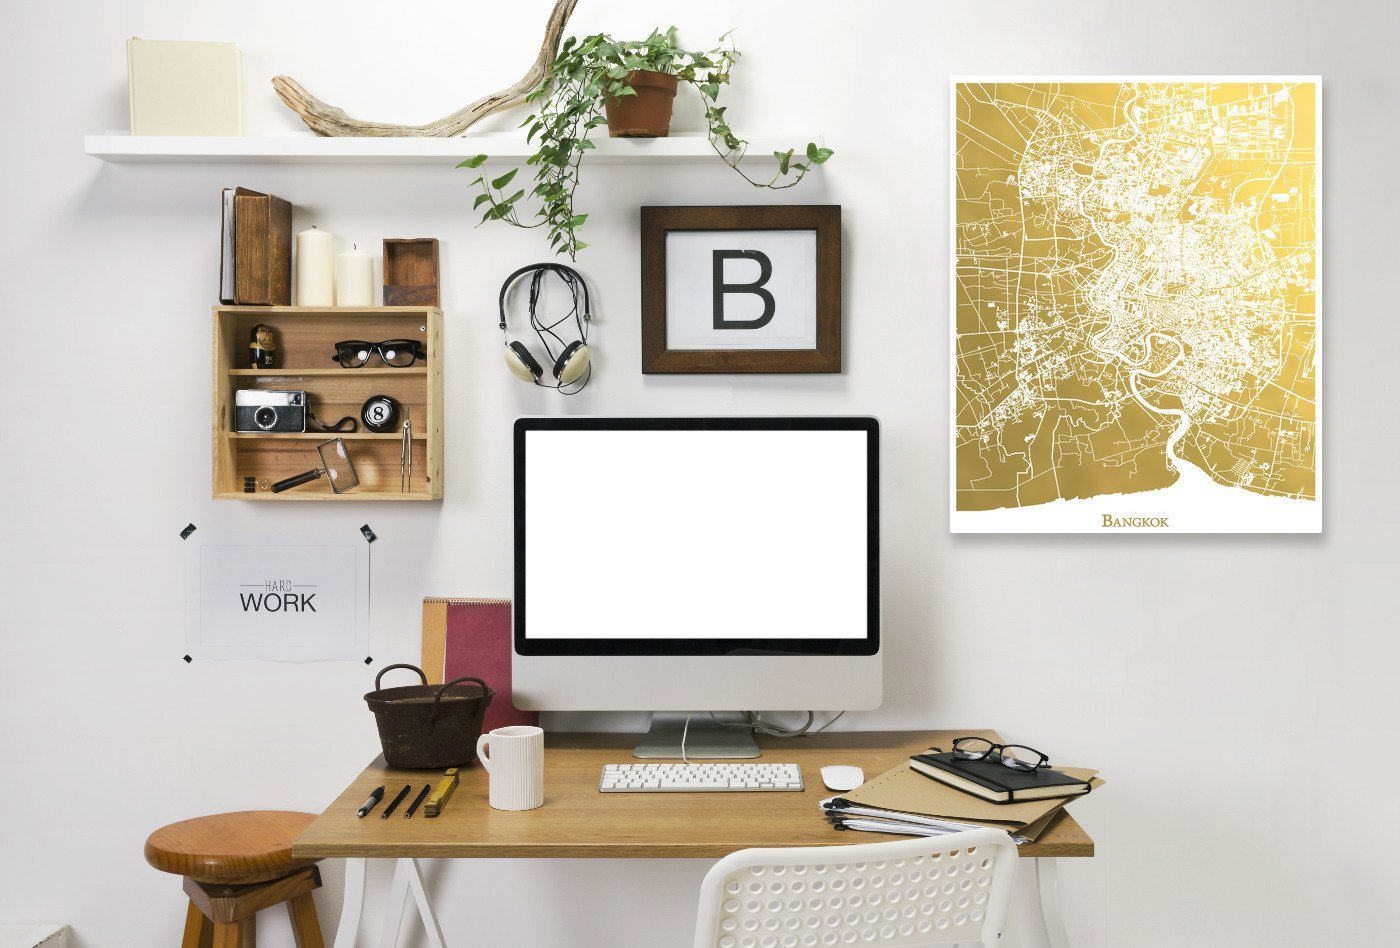 Bangkok by The Gold Foil Map Company Wrapped Canvas - Wrapped Canvas - Americanflat